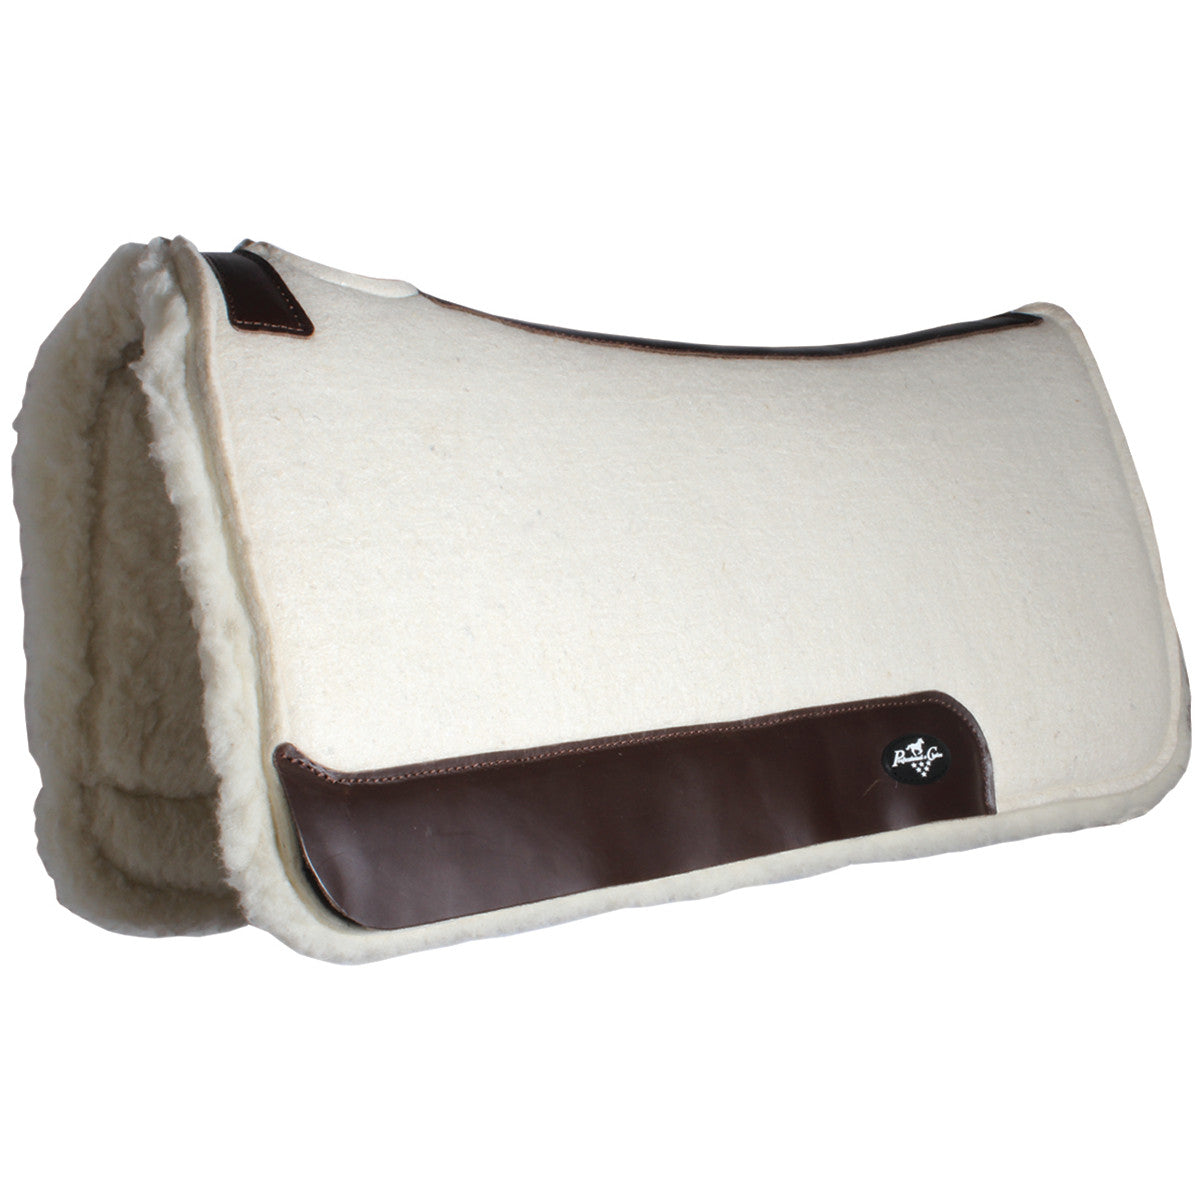 Professional's Choice Steam Pressed Comfort-Fit Merino Wool Saddle Pad